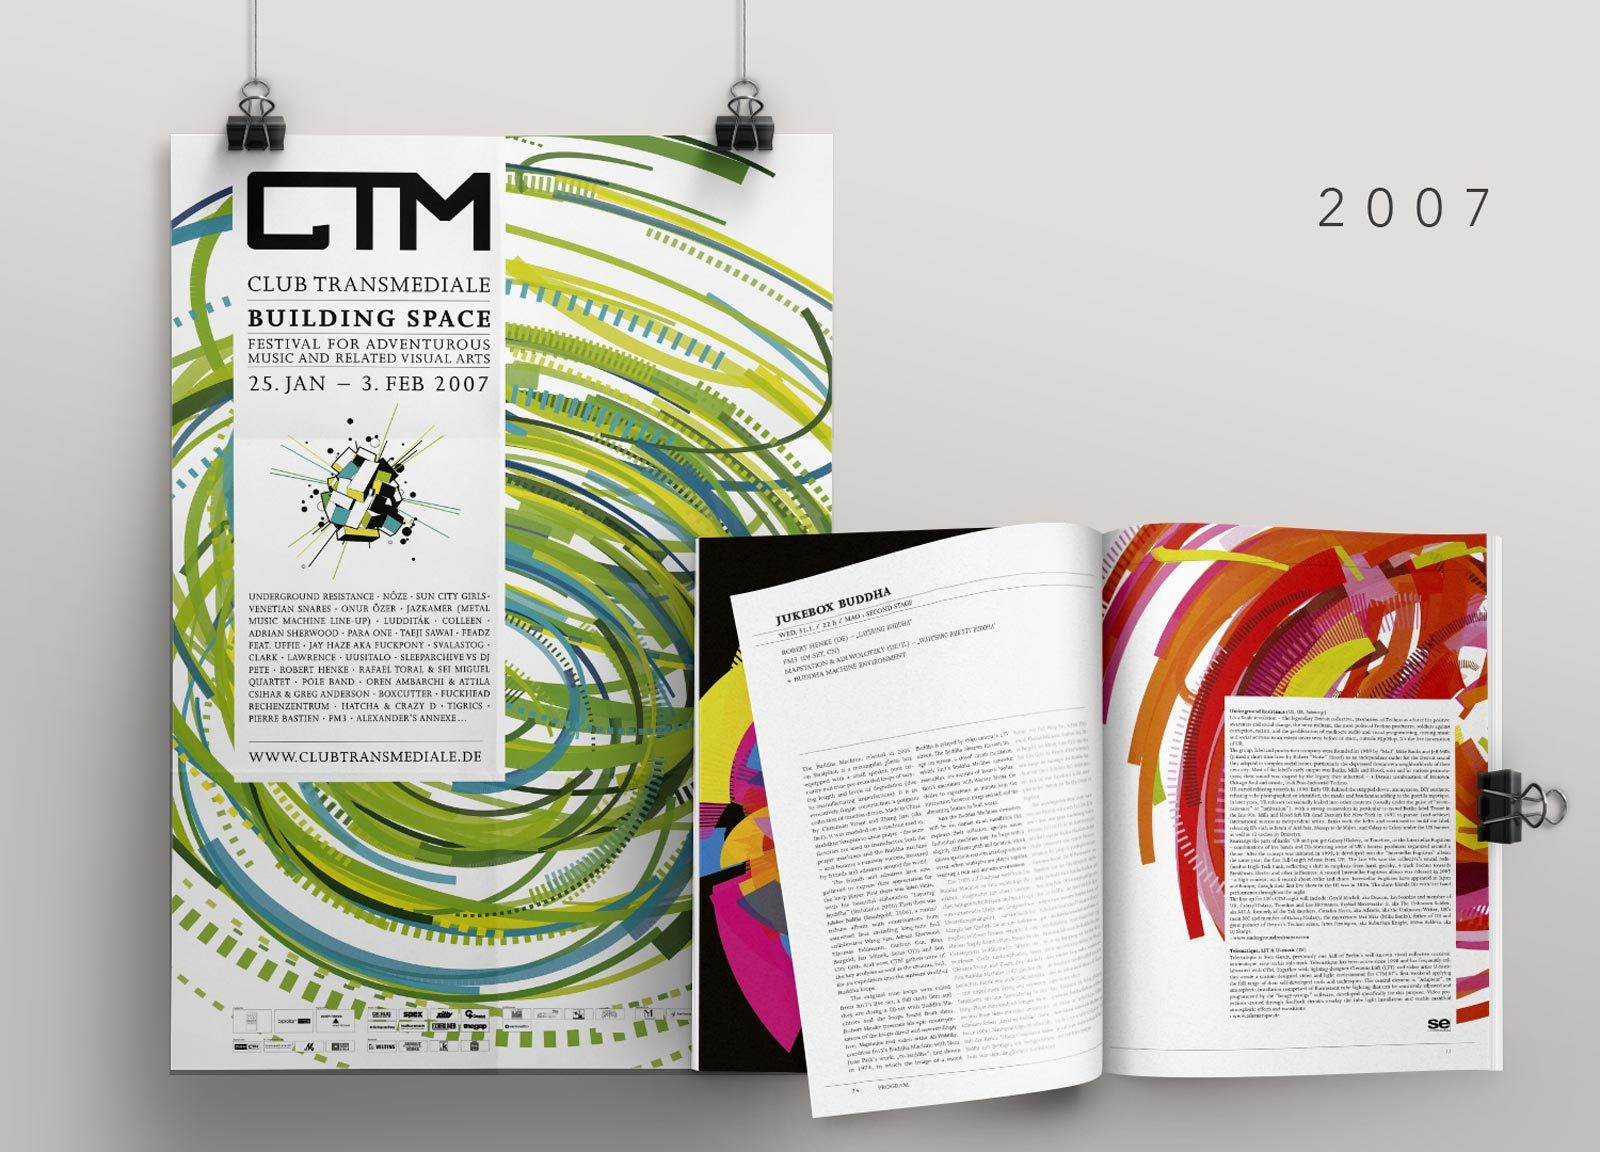 Editienne Grafikdesign - Kommunikationsdesign Berlin- CTM Festival- Corporate Identity und Editorial Design 4